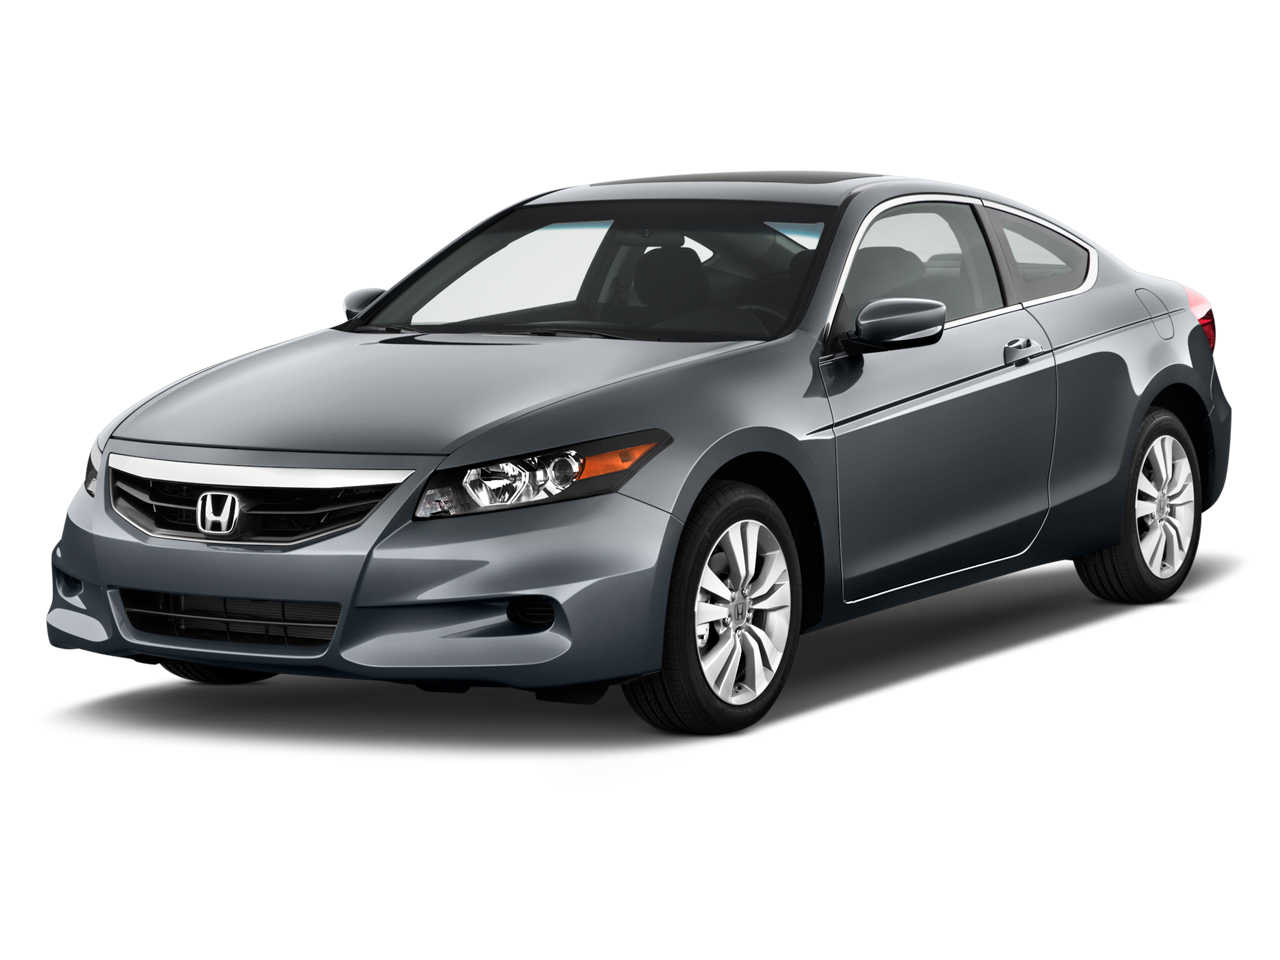 2012 honda accord coupe review ratings specs prices. Black Bedroom Furniture Sets. Home Design Ideas